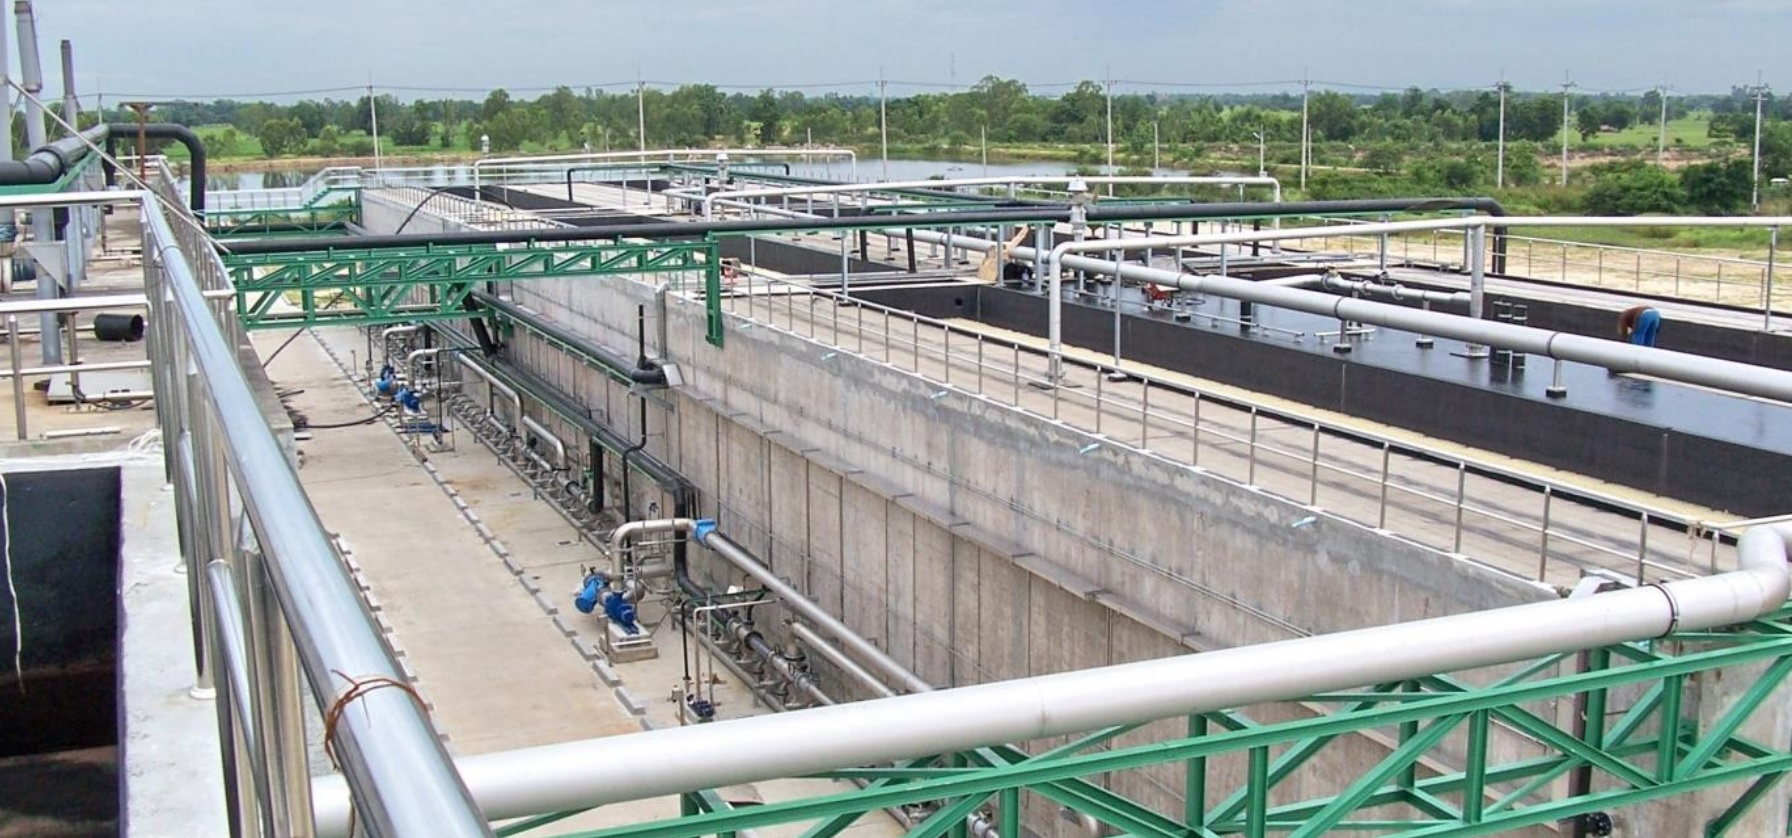 water treatment plant bio gas raptor global water engineering resuinca usa miami florida